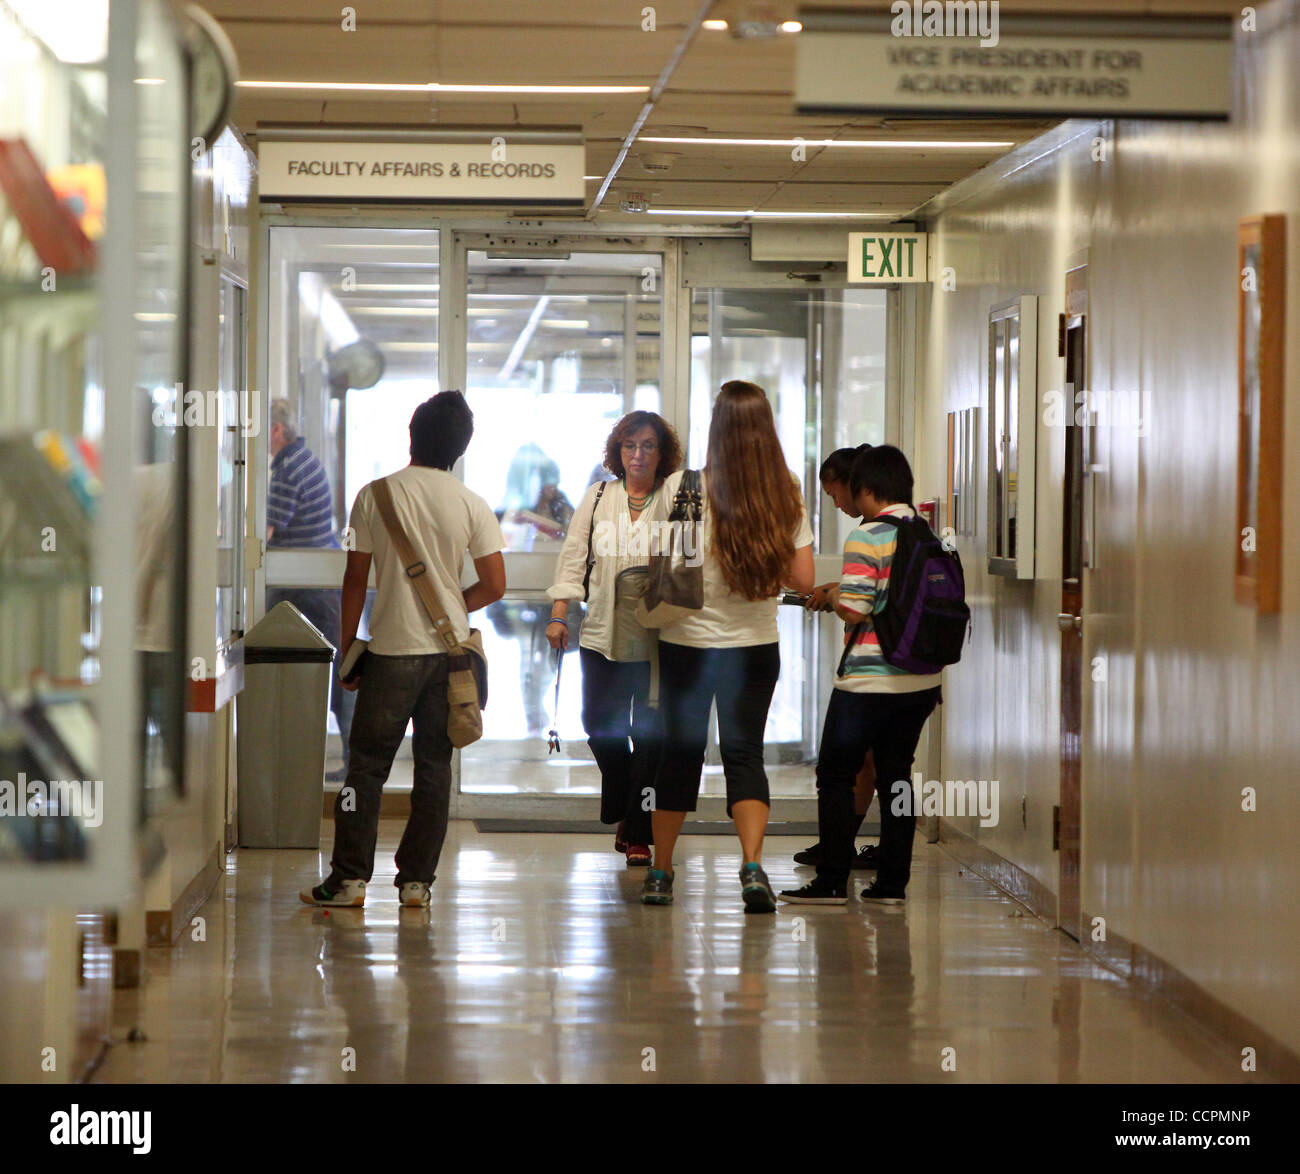 Oct 11, 2010 - Fullerton, California, U.S. - Students roam the halls inside the Langsdorf Building at California - Stock Image